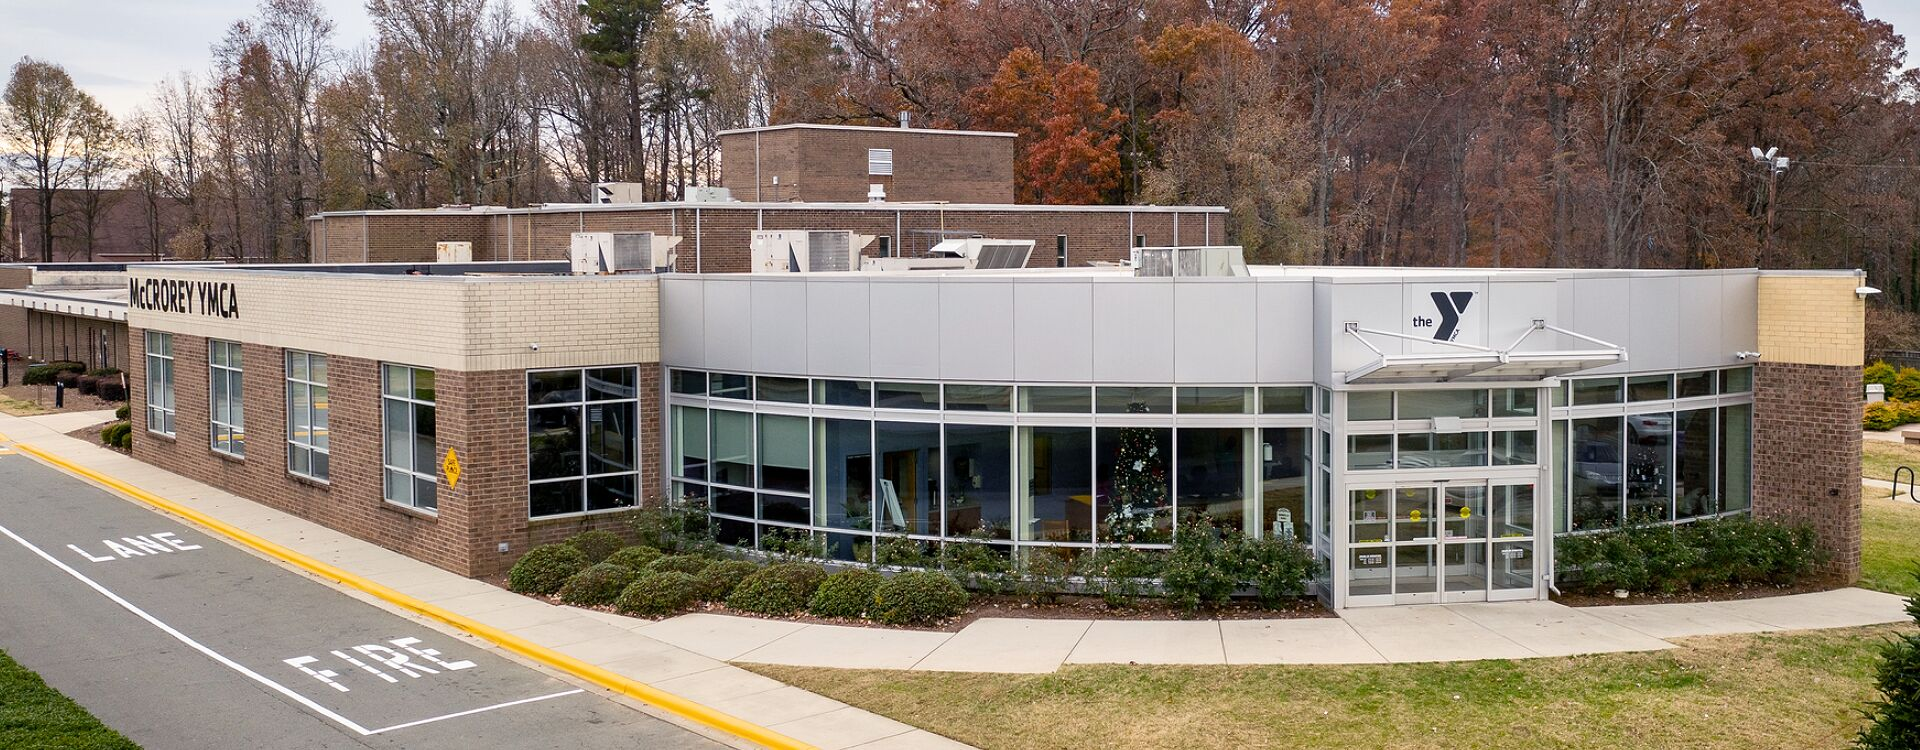 A Striking Front View of McCrorey YMCA of Charlotte